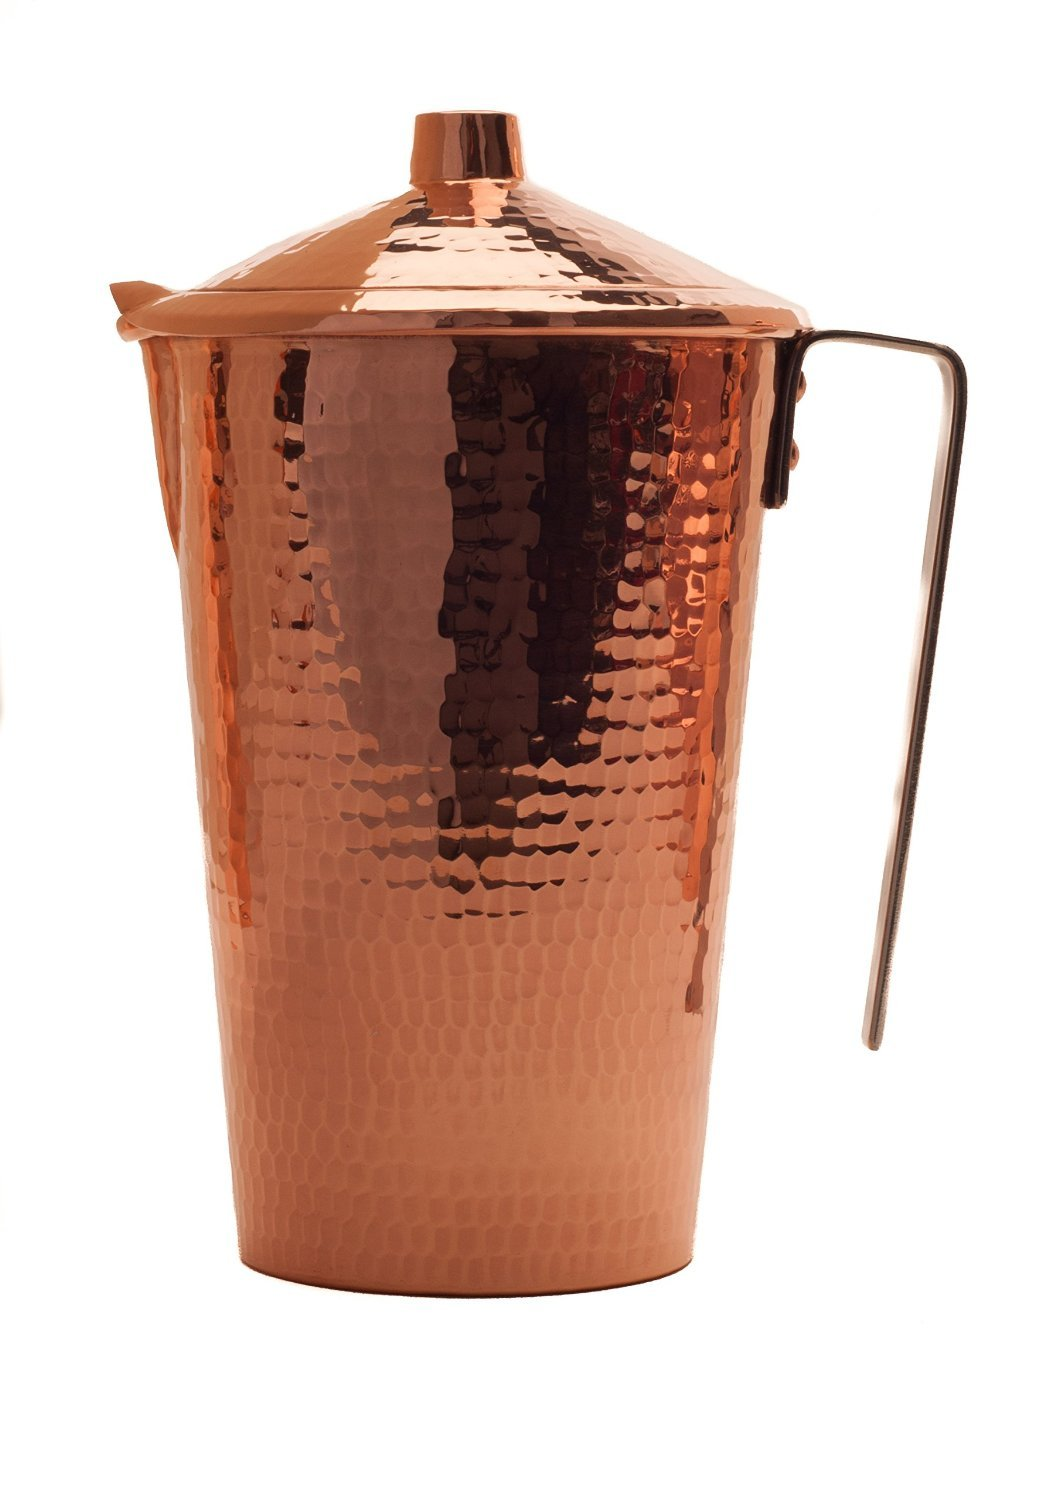 Sertodo Copper WPL-70 Gangotri Ayurvedic Water Pitcher with Stainless Steel Handle and Lid, Hand Hammered 100% Pure Copper, 70 oz